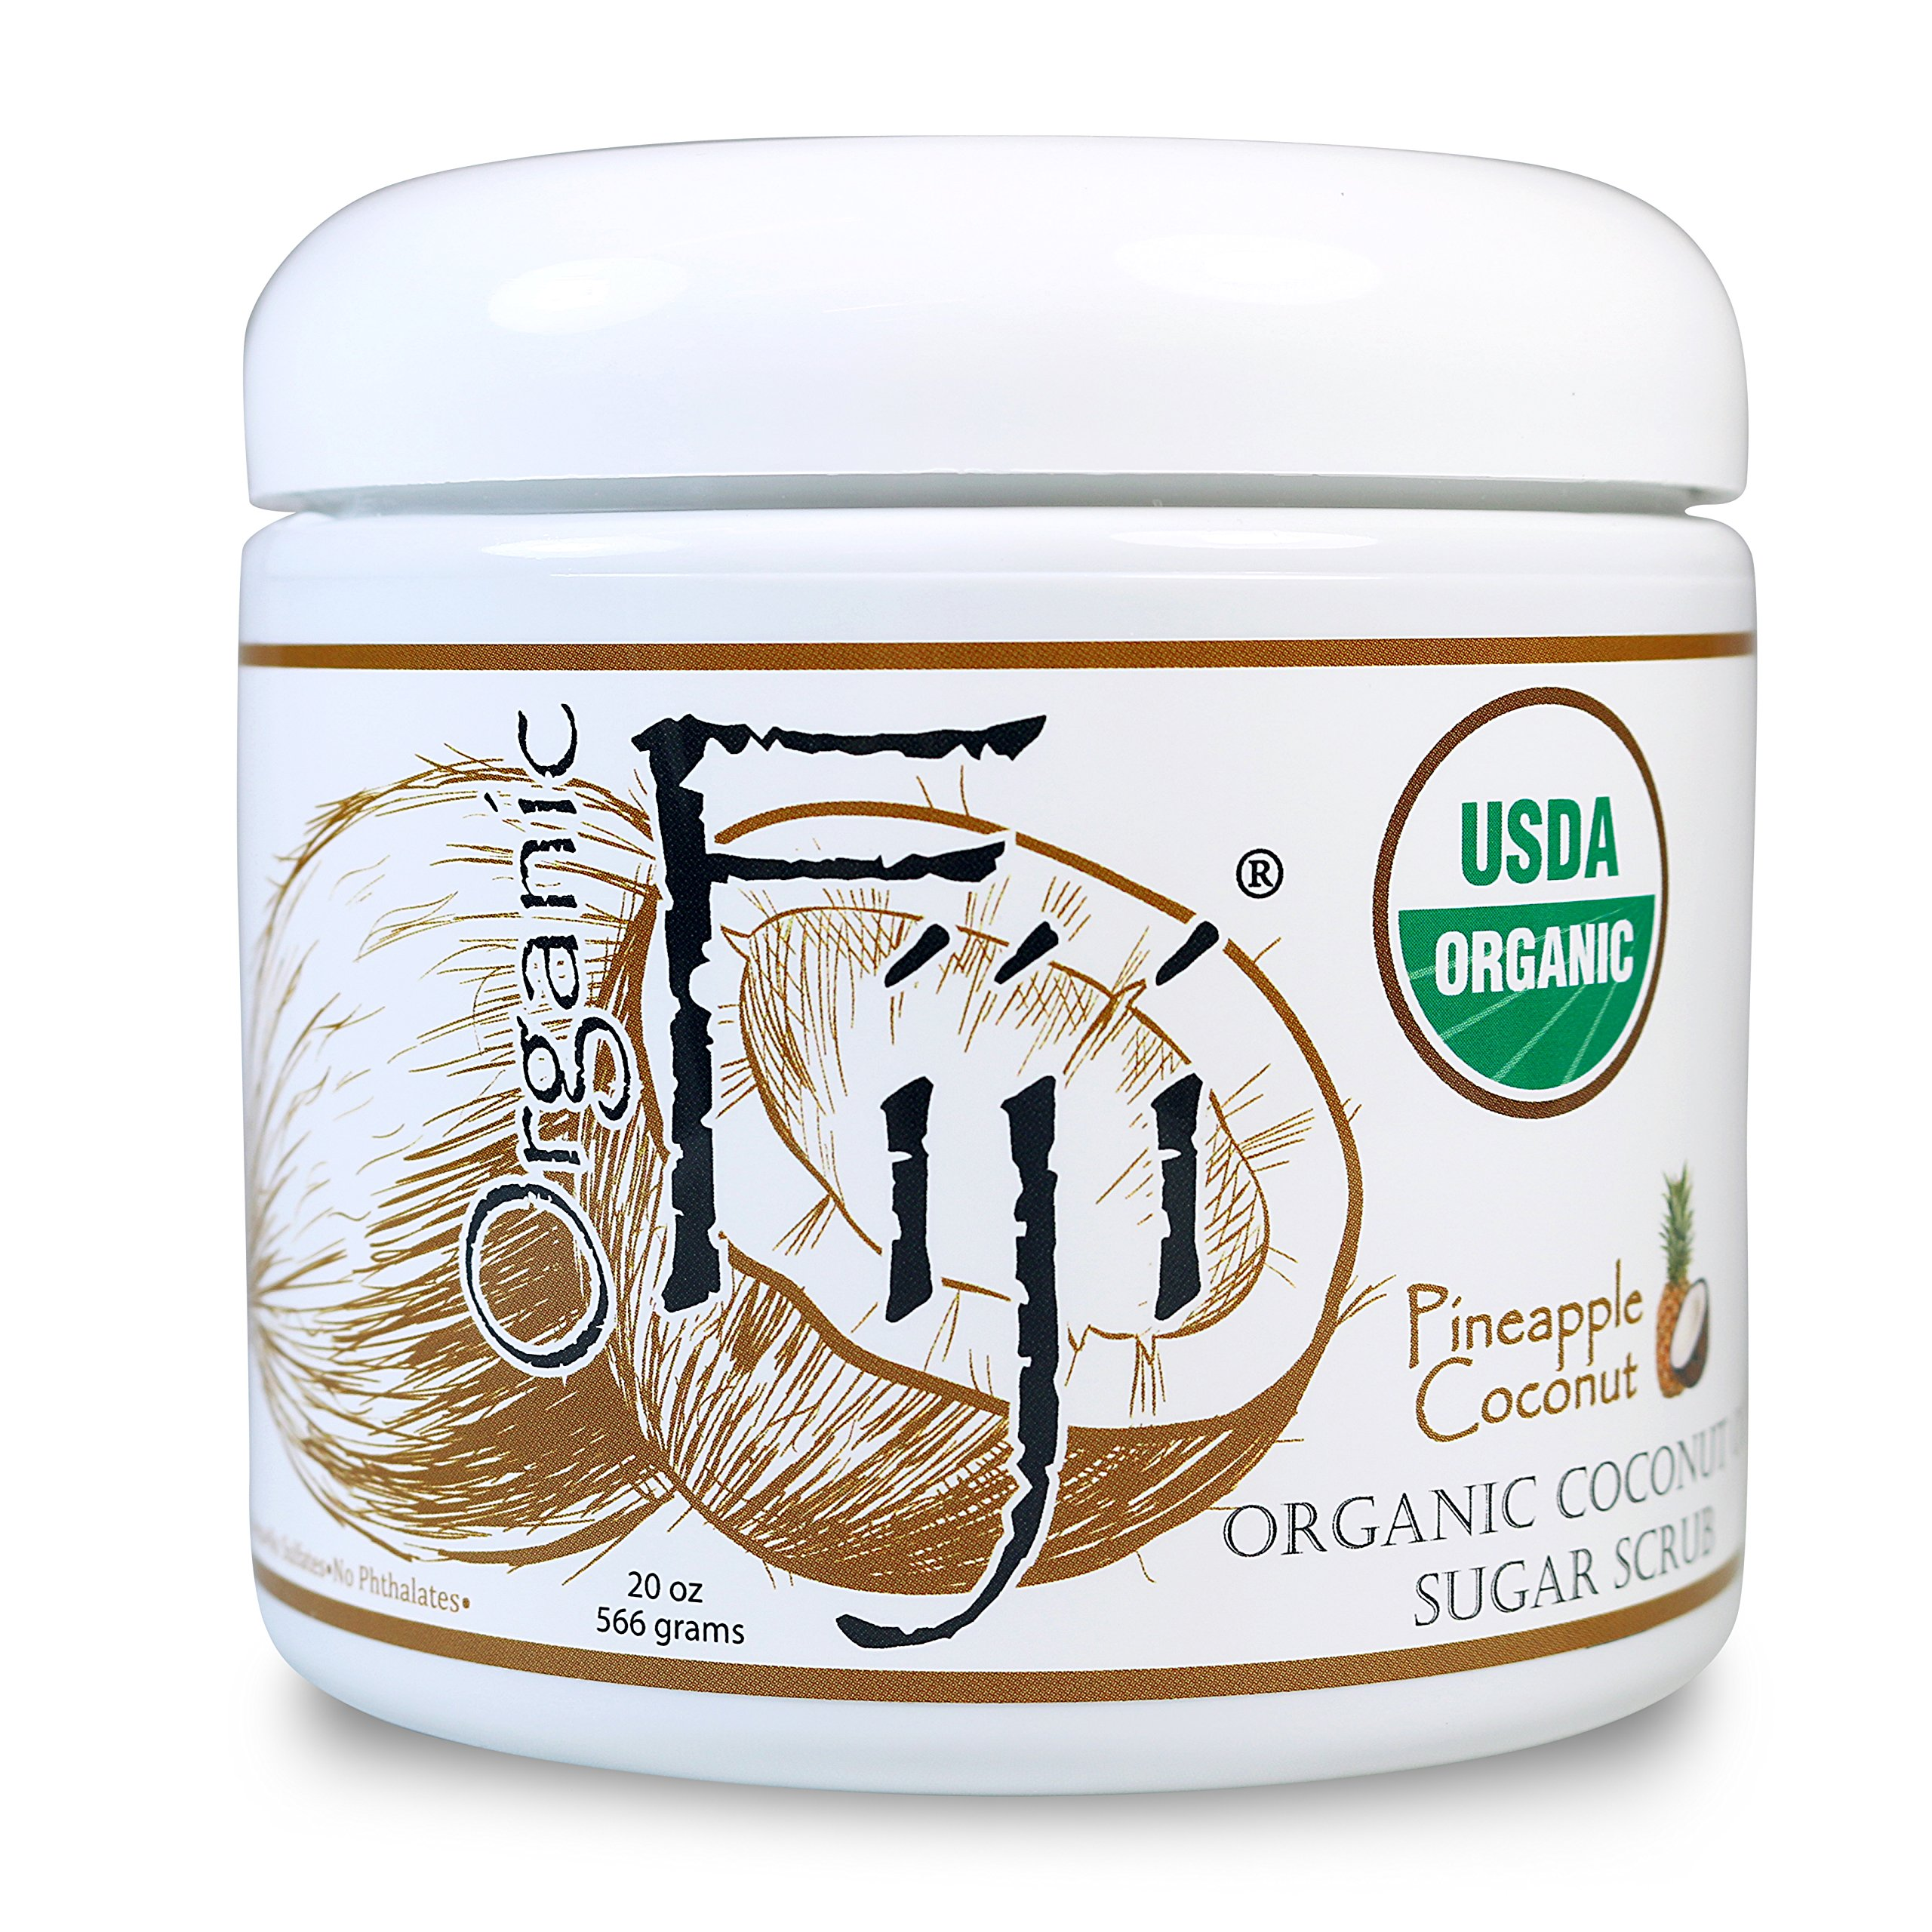 Organic Fiji PINEAPPLE COCONUT Sugar Scrub 20-Ounces for Face & Body by Organic Fiji